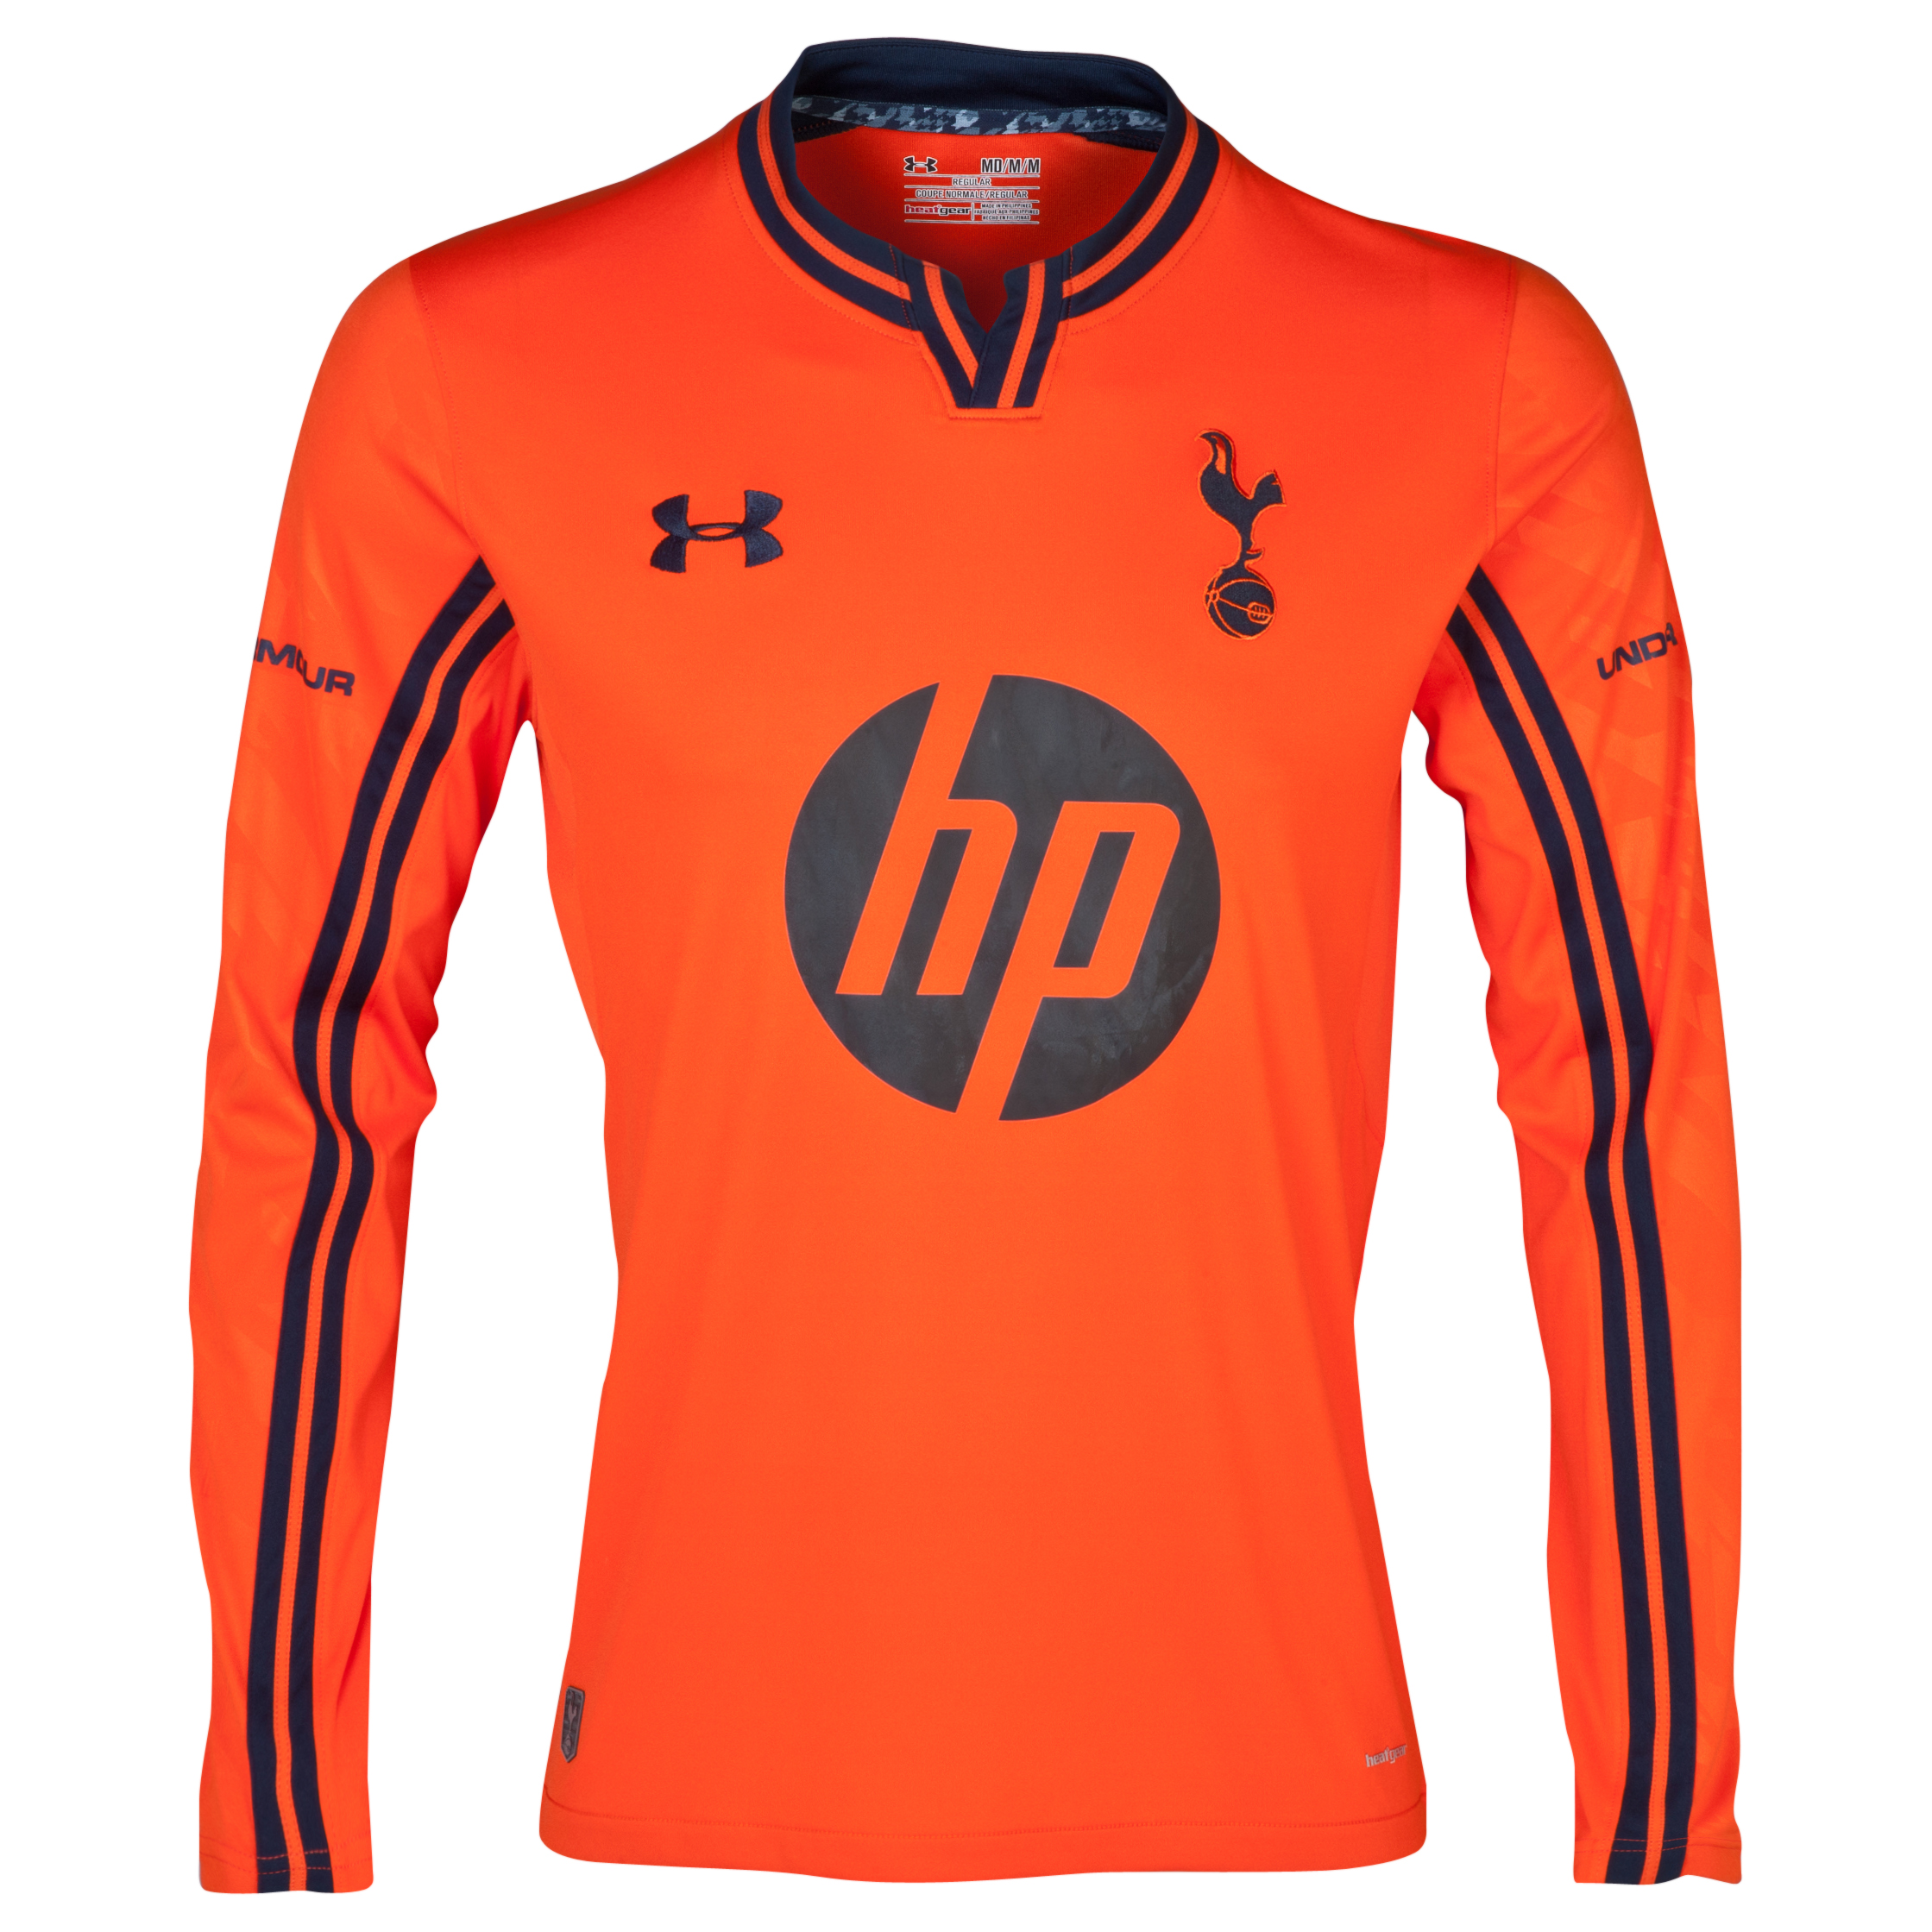 Buy Tottenham Hotspur Home Goalkeeper Kit 2013/14